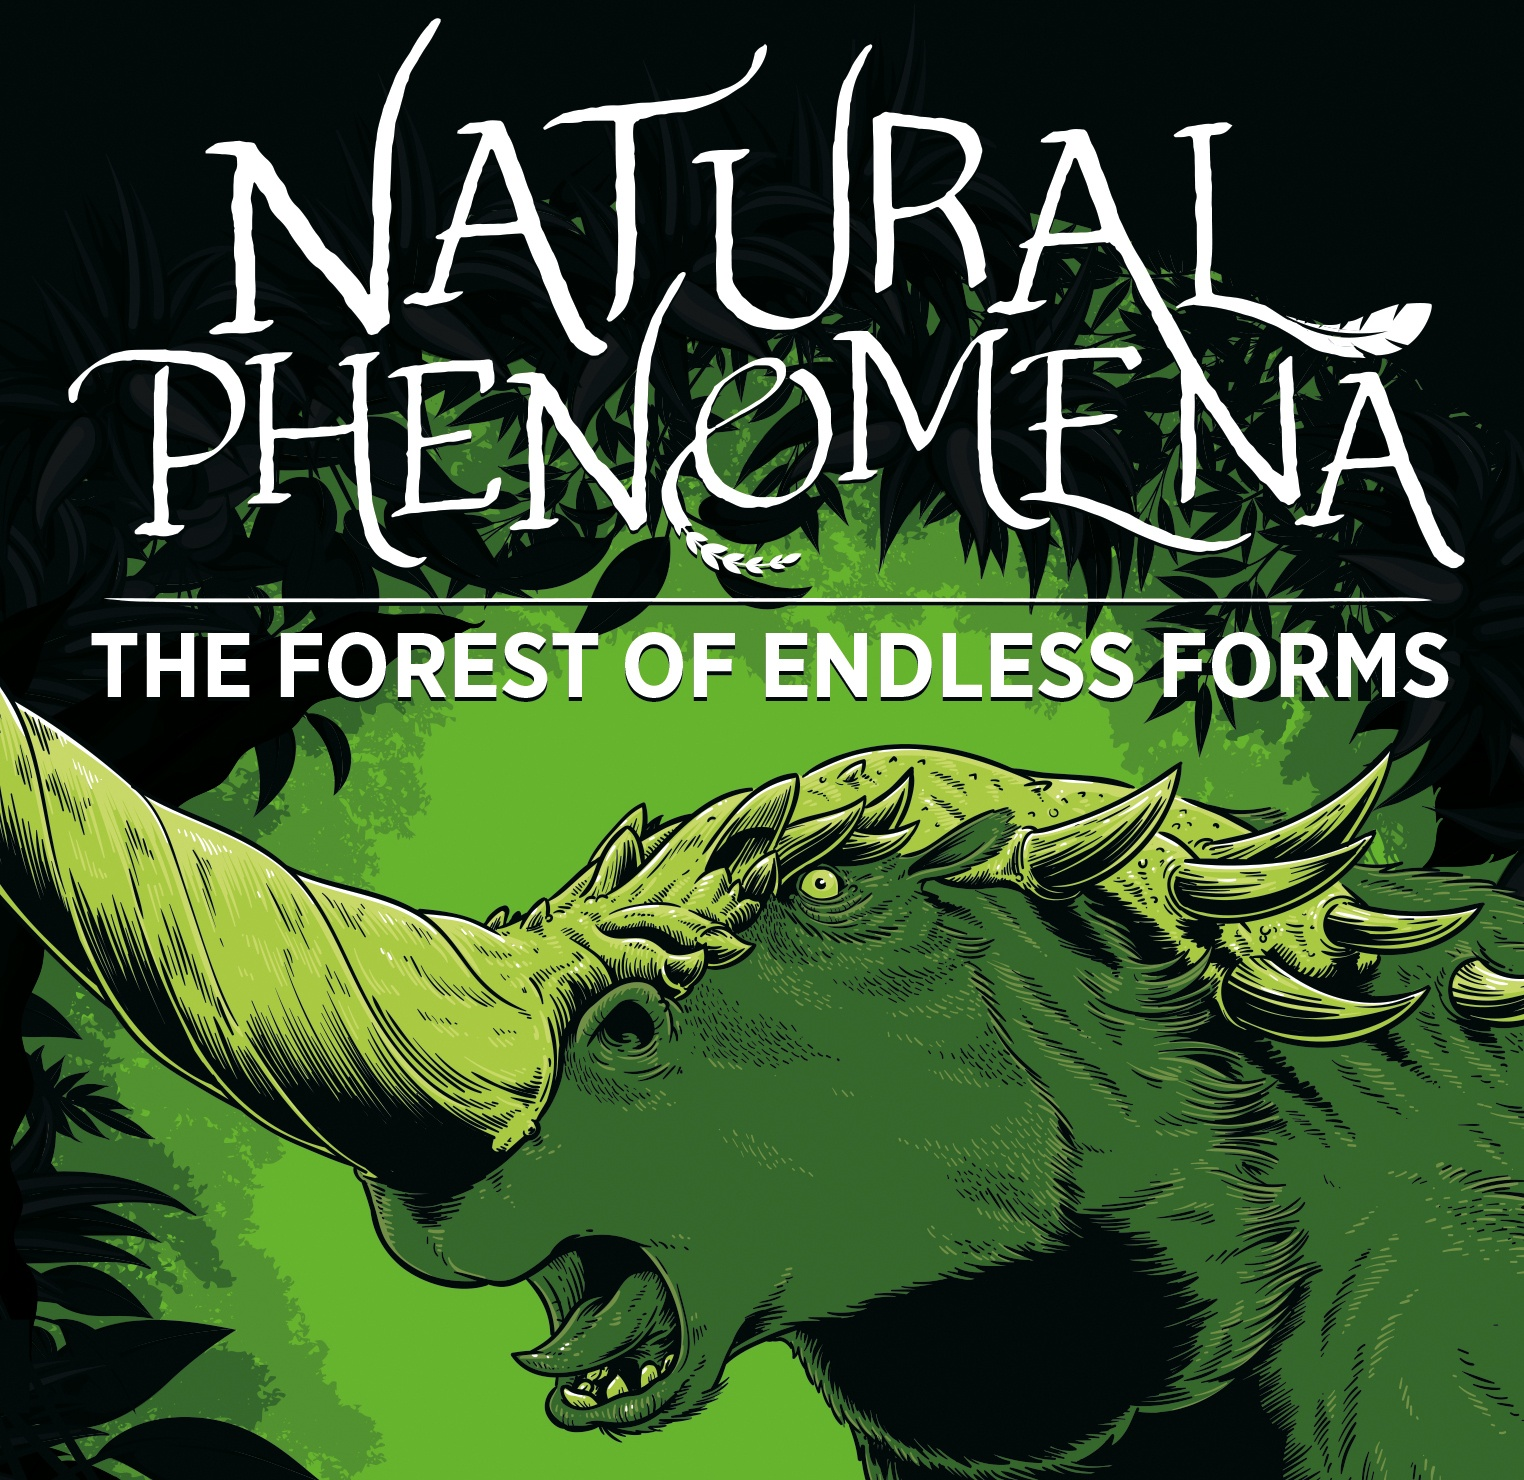 Portion of the Natural Phenomena cover